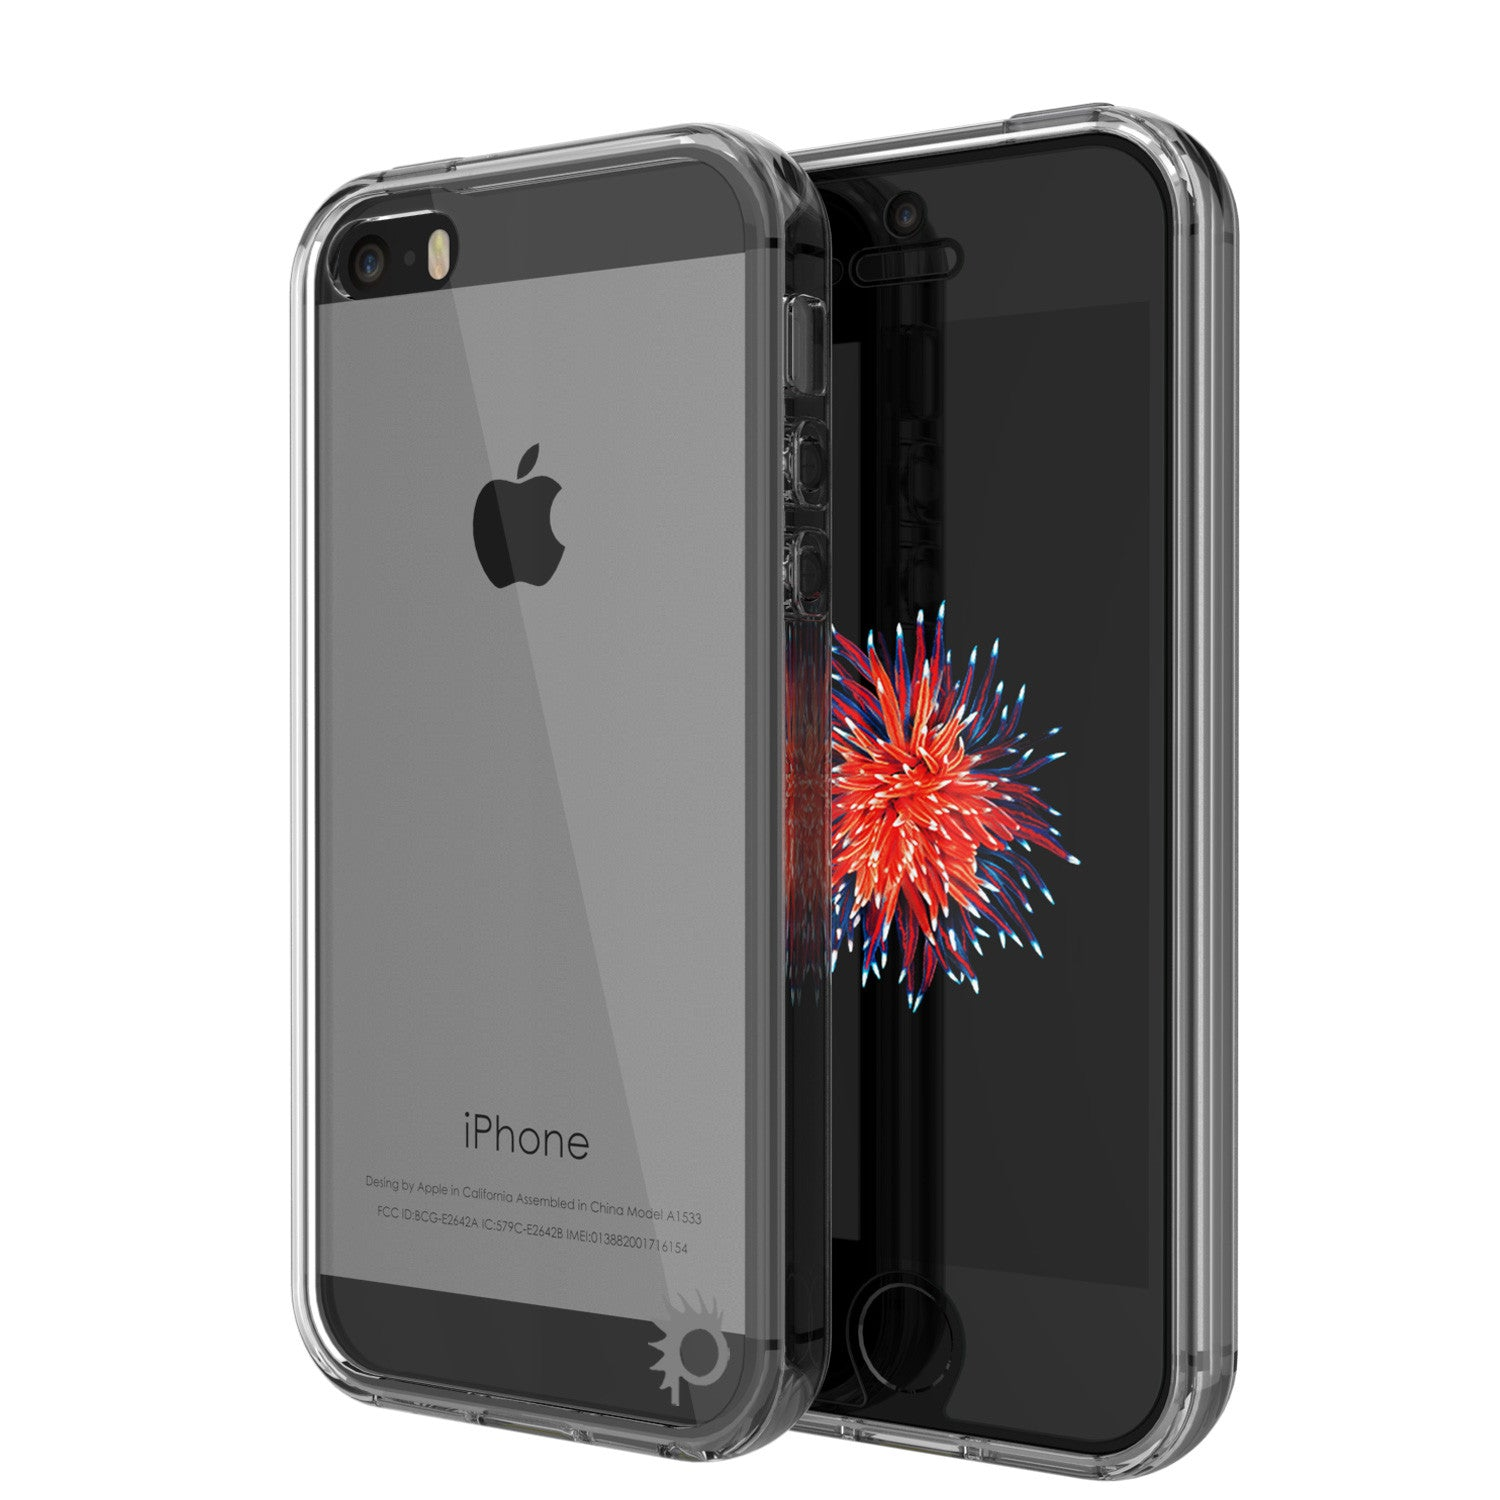 iPhone SE/5S/5 Case Punkcase® LUCID 2.0 Crystal Black Series w/ PUNK SHIELD Screen Protector | Ultra Fit